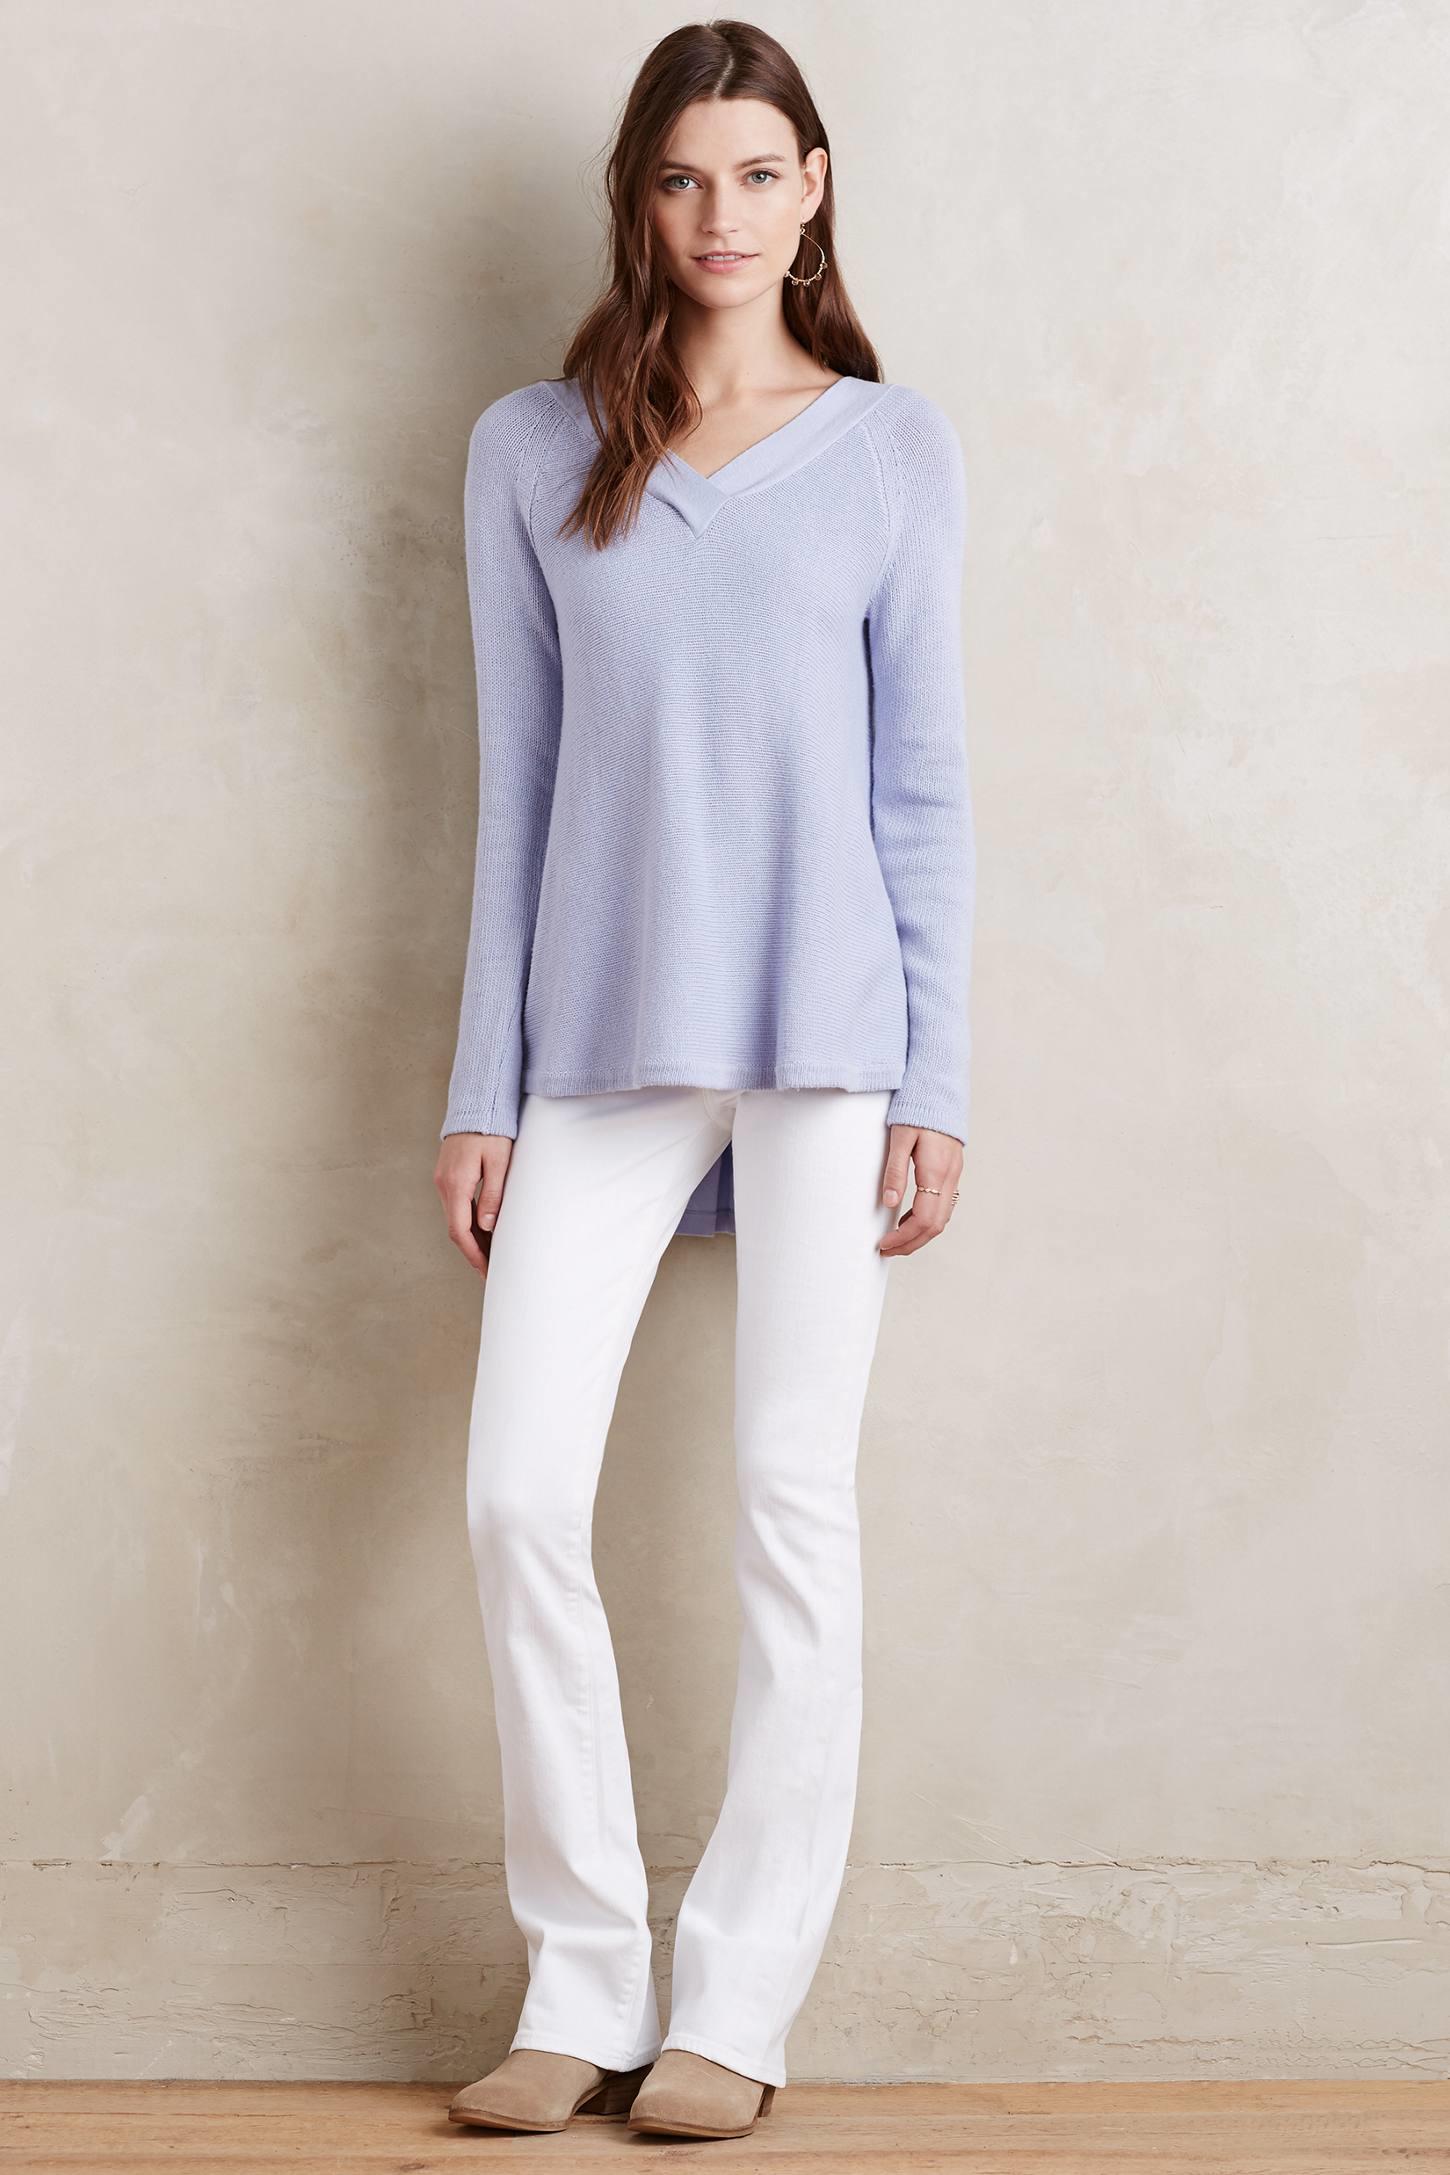 Look and feel great in our women's petite jeans designed specifically for your smaller frame. From skinny to flare, Talbots petite jeans always fit your style.